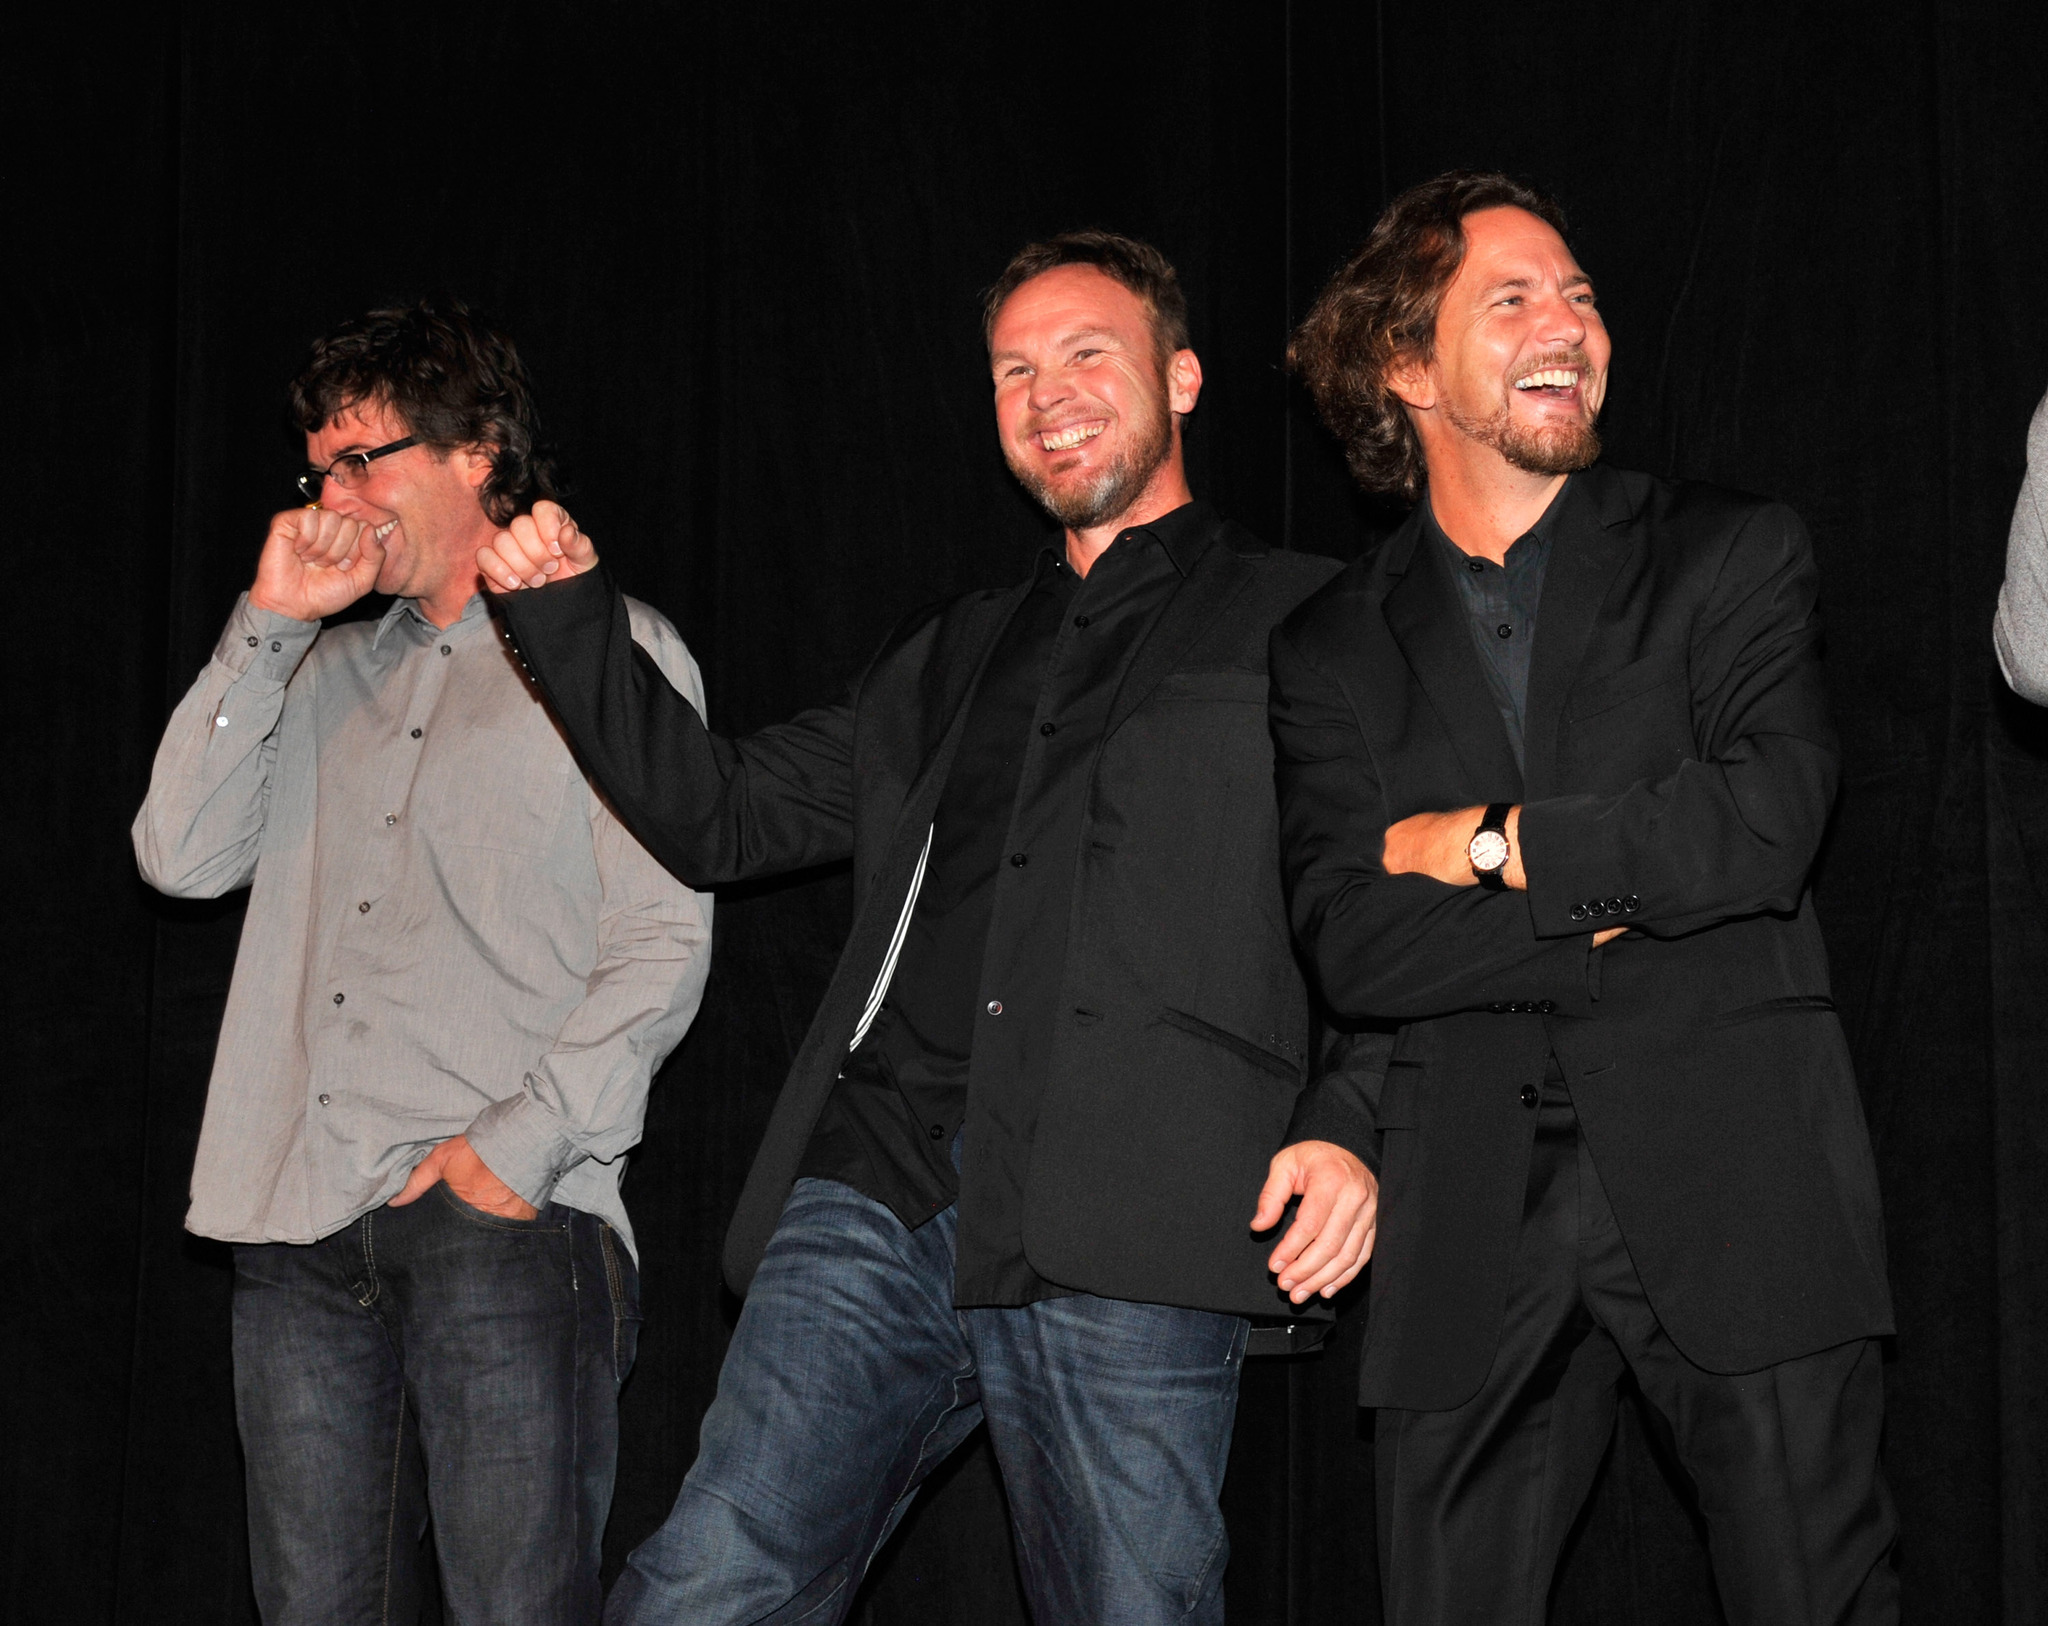 Jeff Ament, Stone Gossard, Eddie Vedder and Pearl Jam at event of Pearl Jam Twenty (2011)